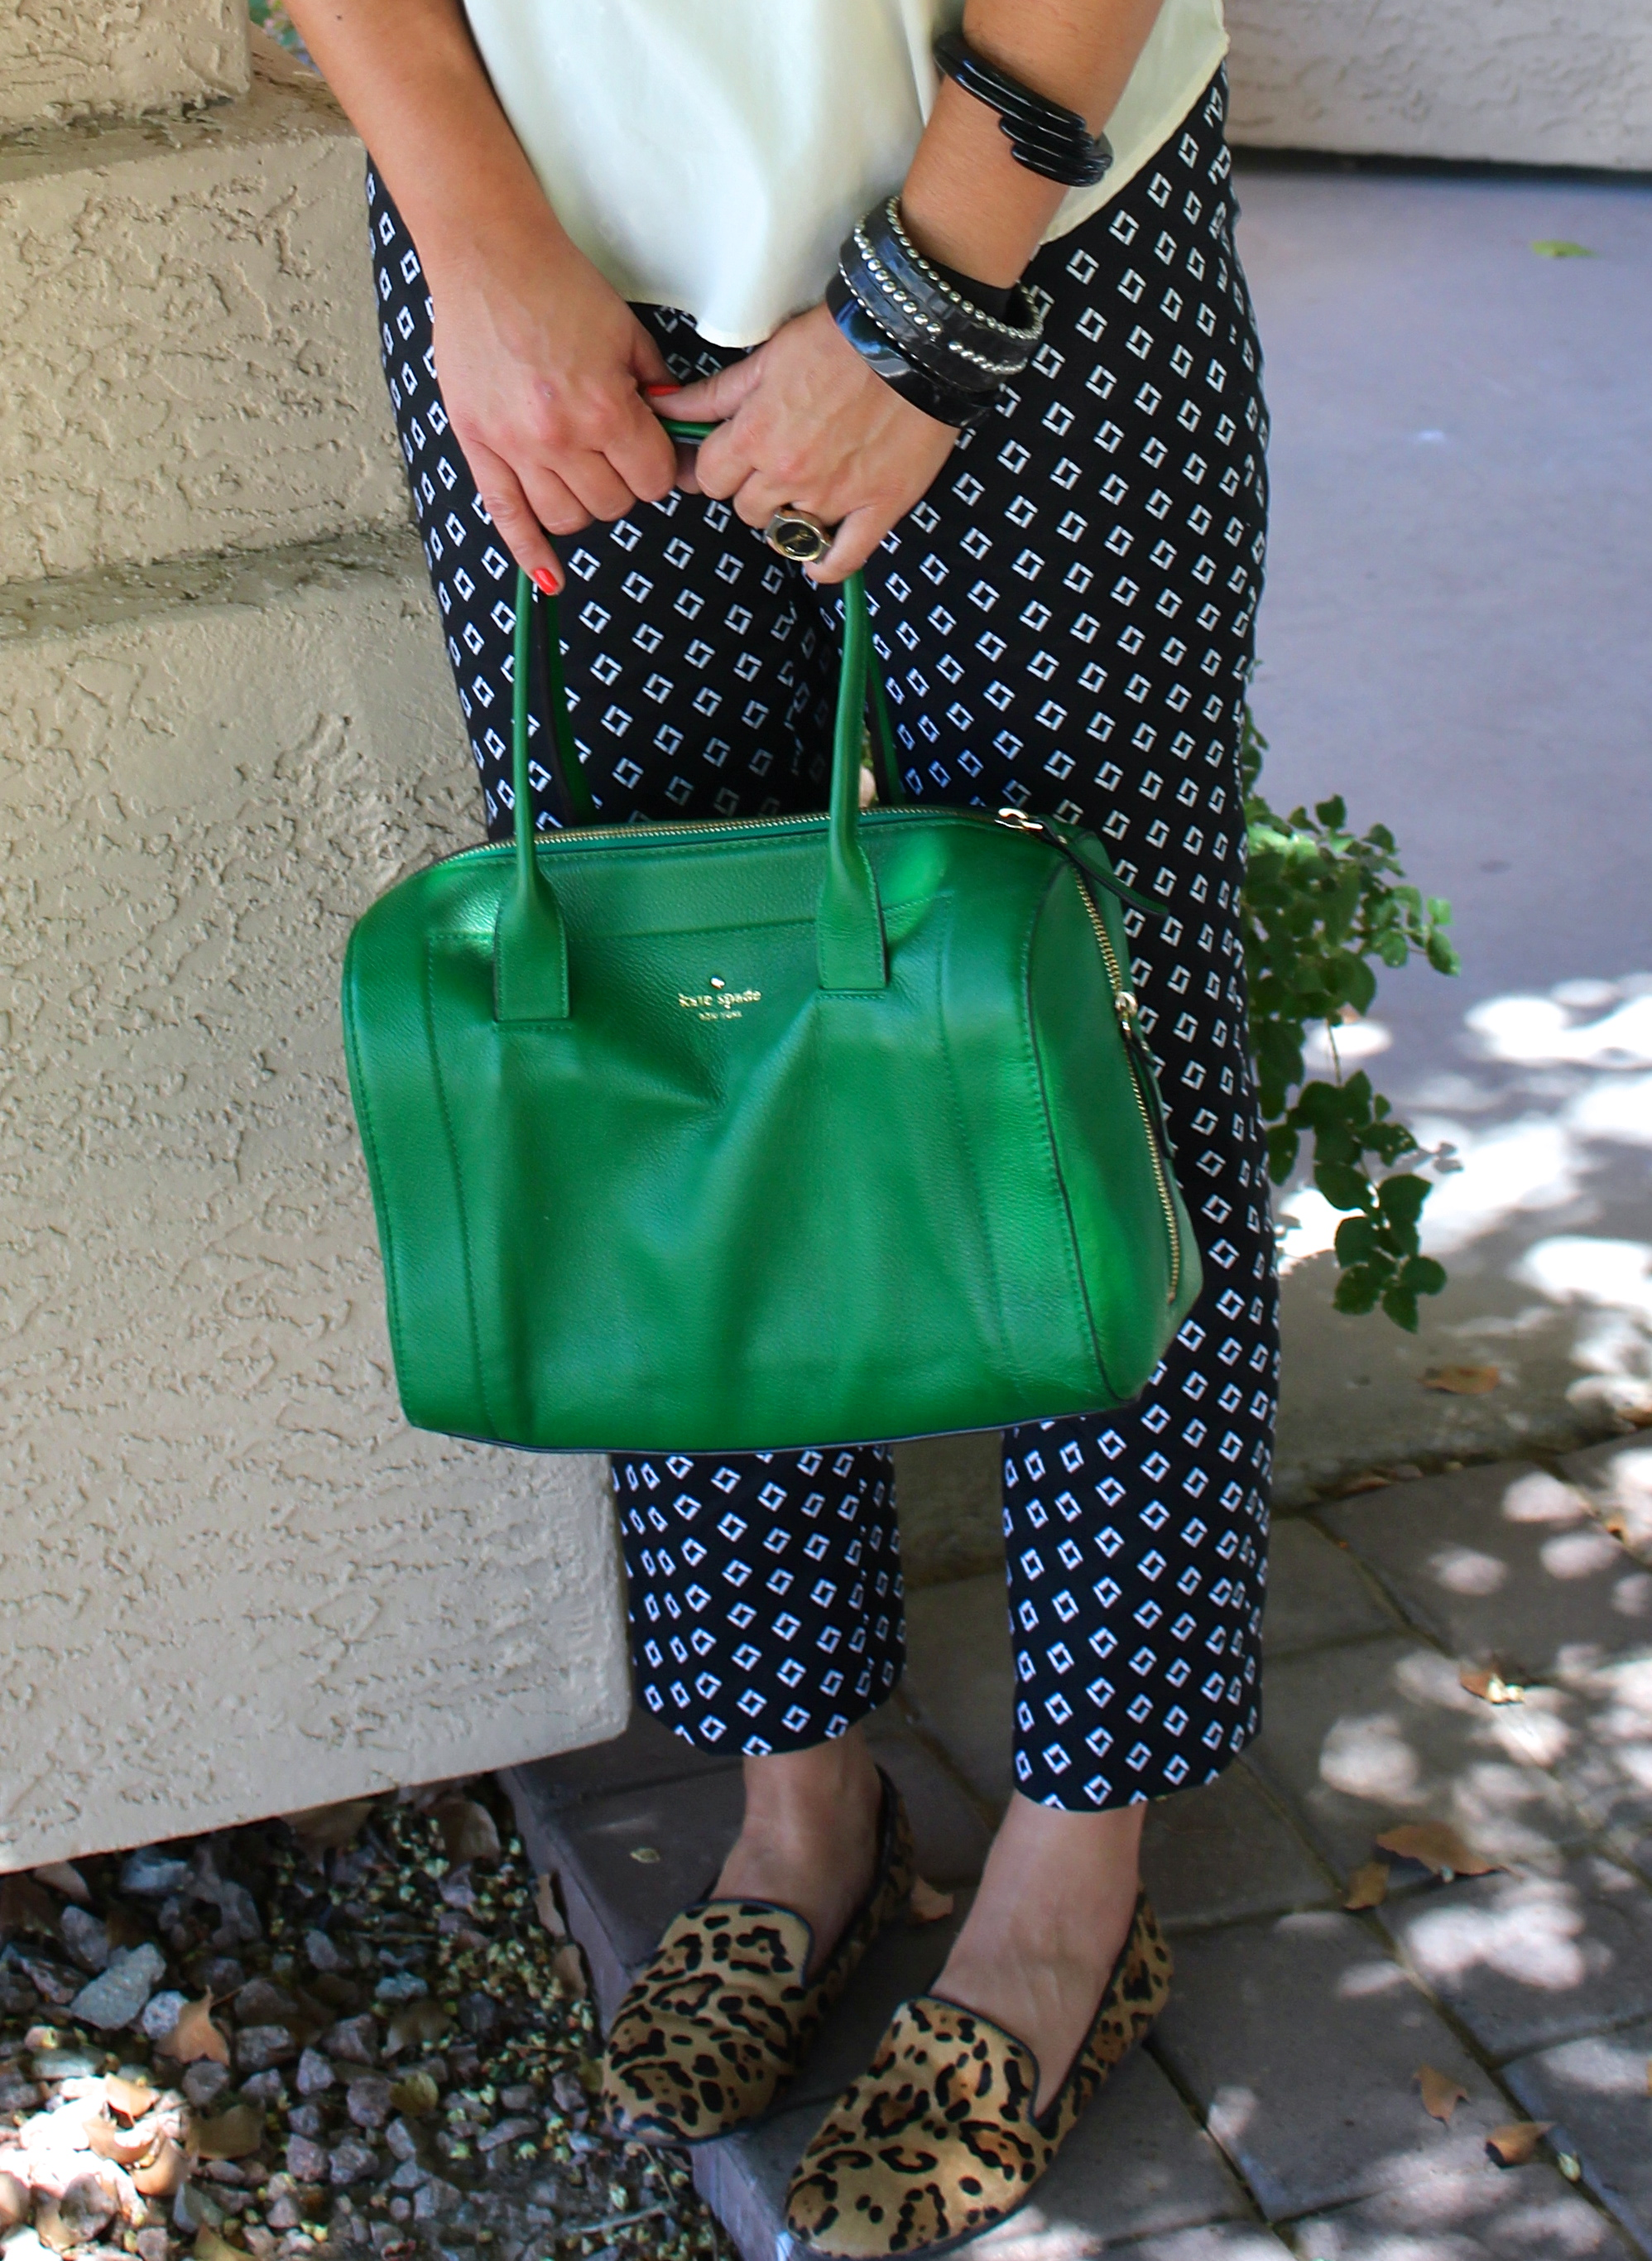 kate spade bag, vince camuto pants, house of harlow sunglasses